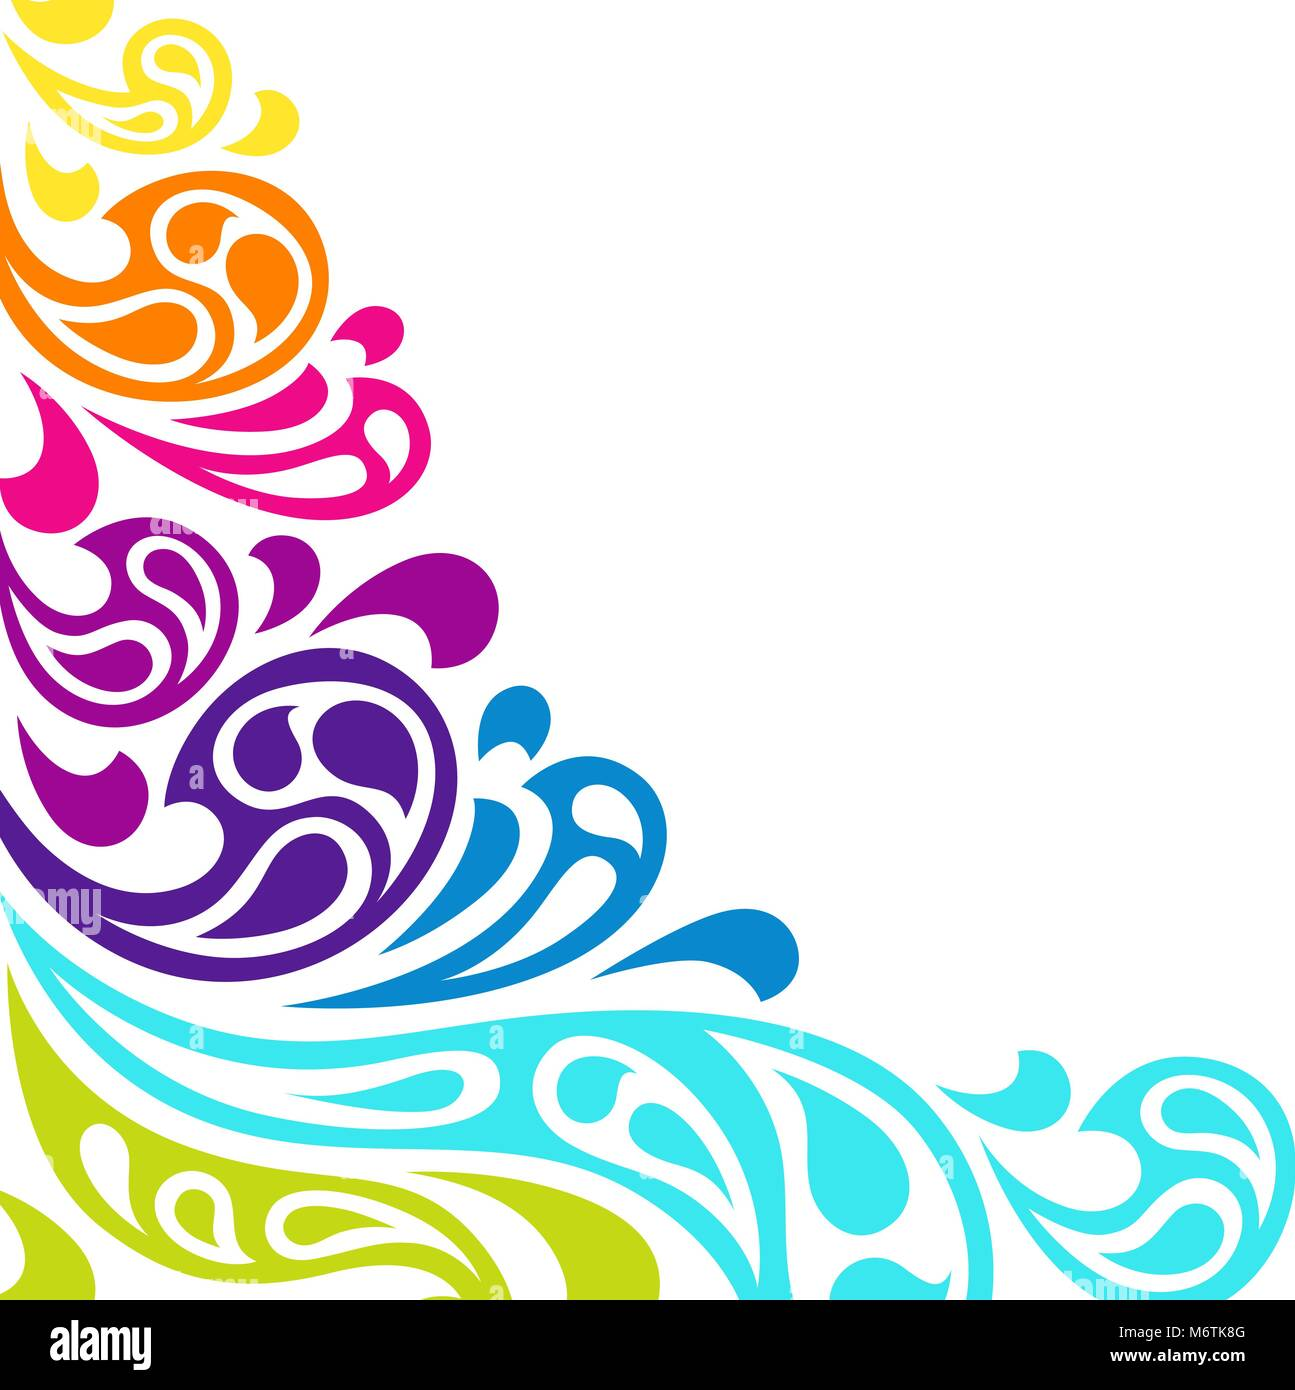 Color splash waves abstract background - Stock Image